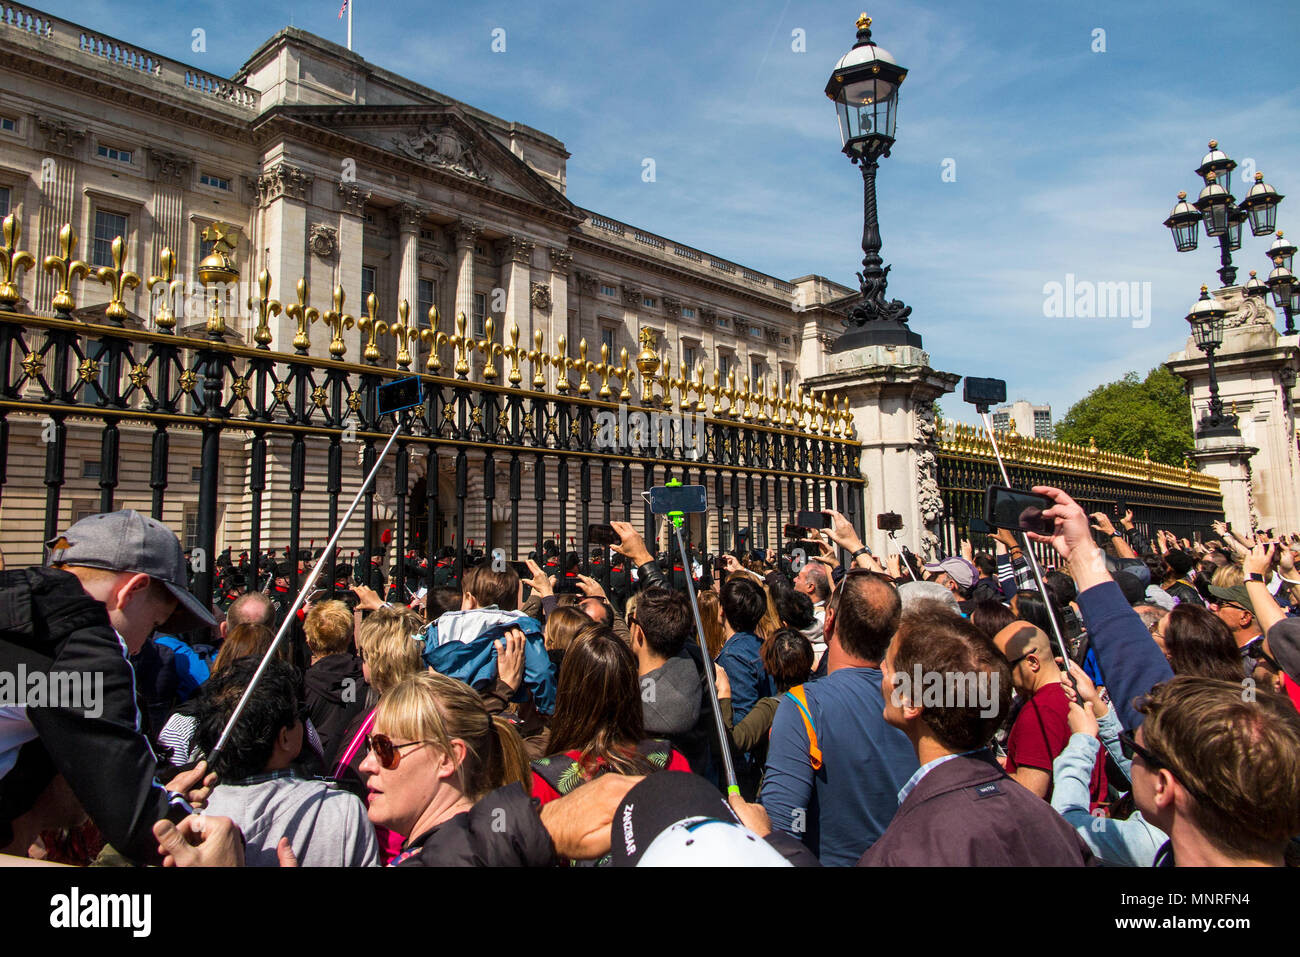 Taking photographs using a selfie stick at an event at Buckingham Palace on a hot summers day - Stock Image